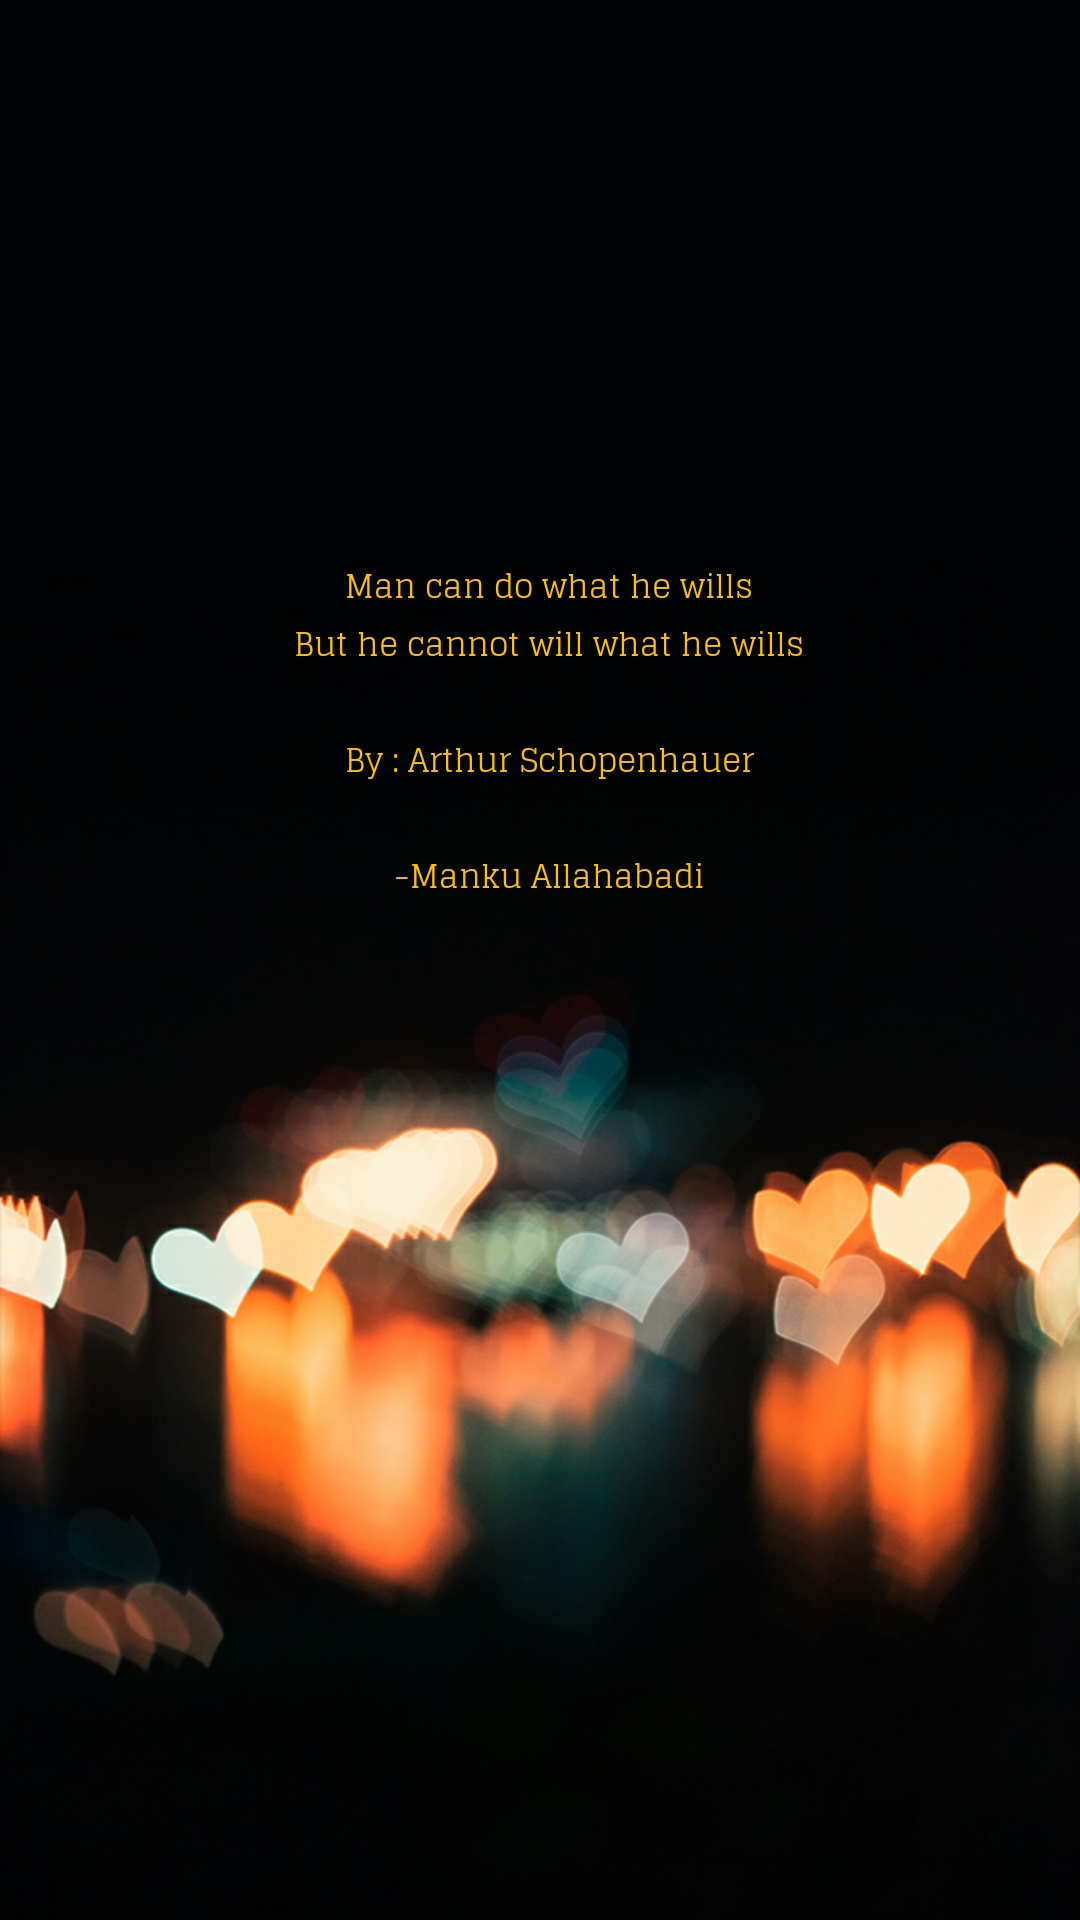 Man can do what he wills But he cannot will what he wills  By : Arthur Schopenhauer  -Manku Allahabadi